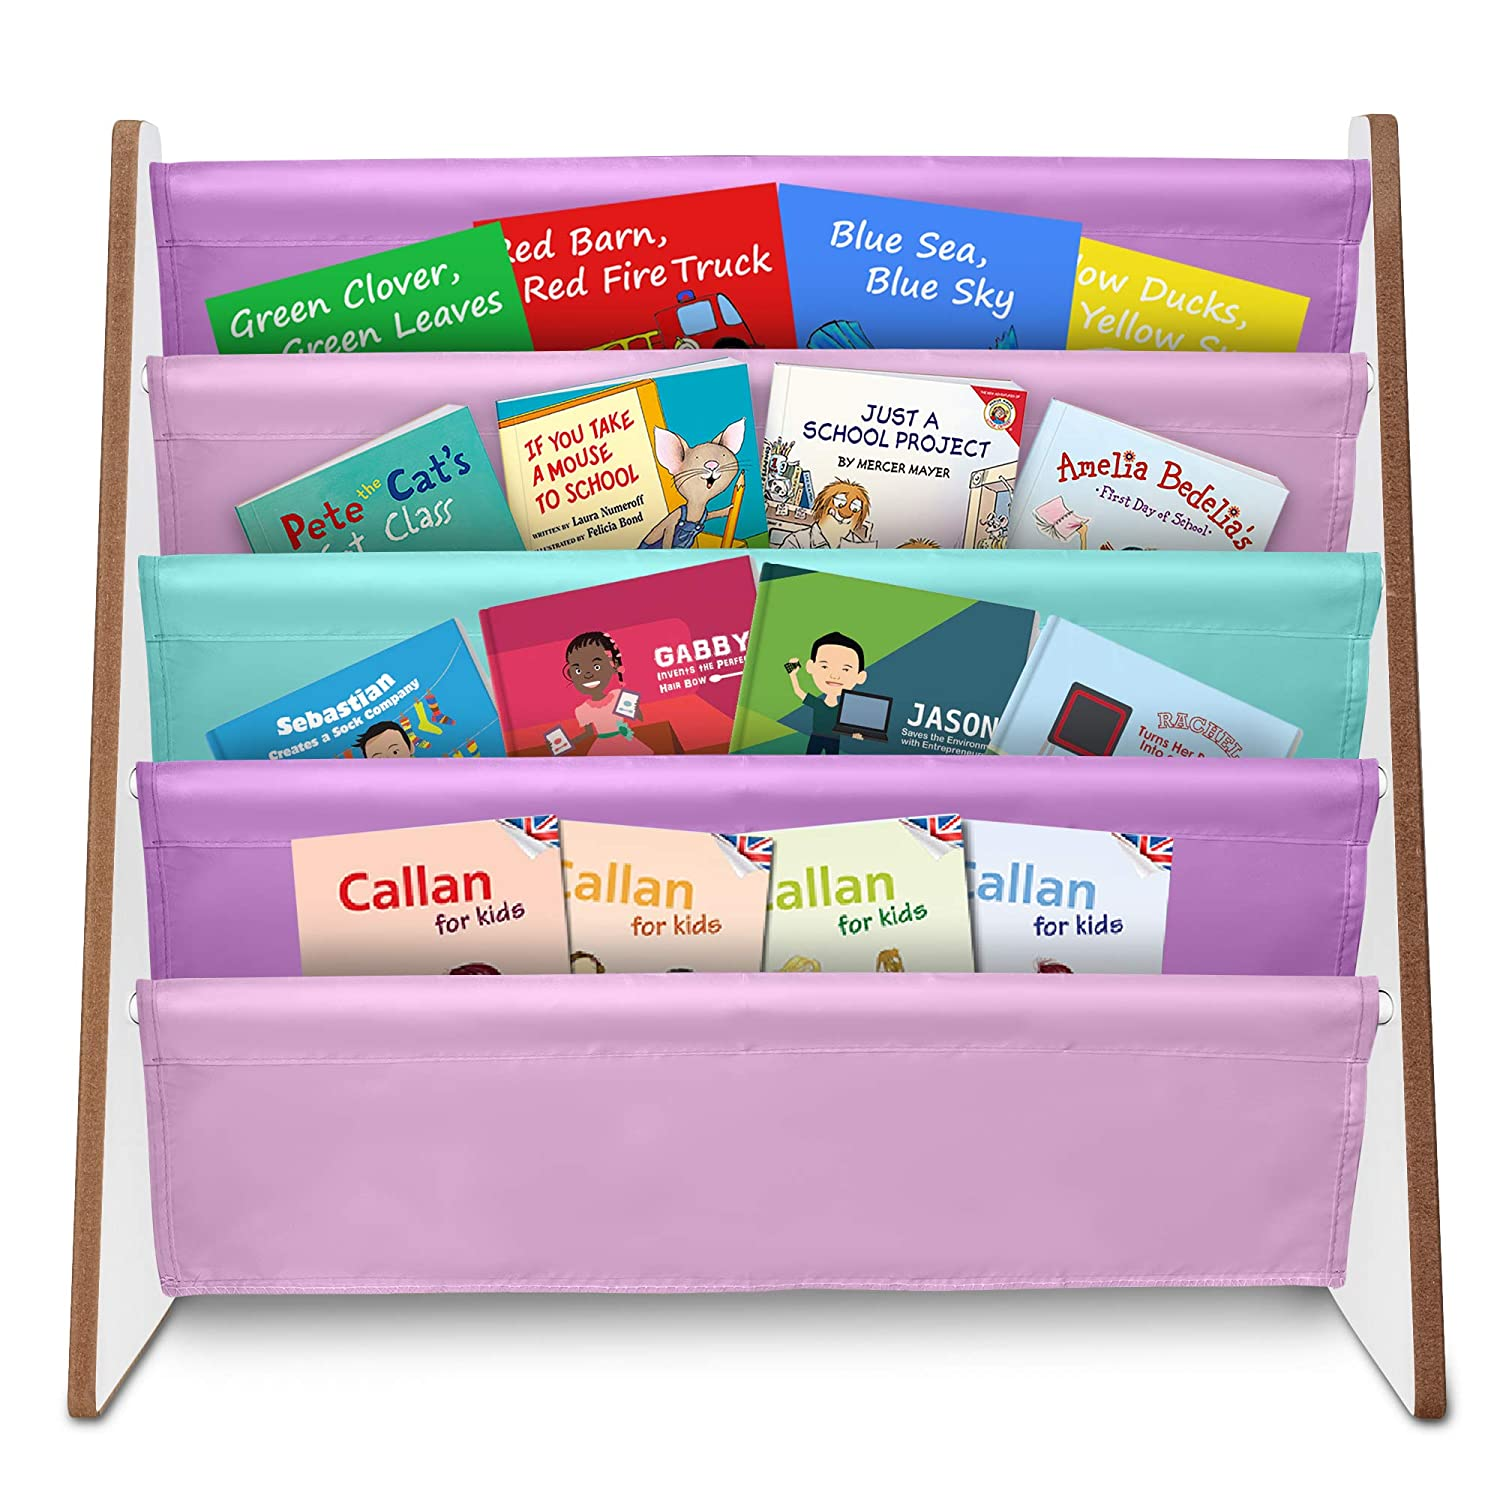 Fineway. 4 Tier Kids Book Storage Rack Wooden Sling Bookshelf Childrens Bookcase Shelves – With Soft Nylon Fabric – Ideal Story Books Organiser For Your Little ones. PINKS LILACS